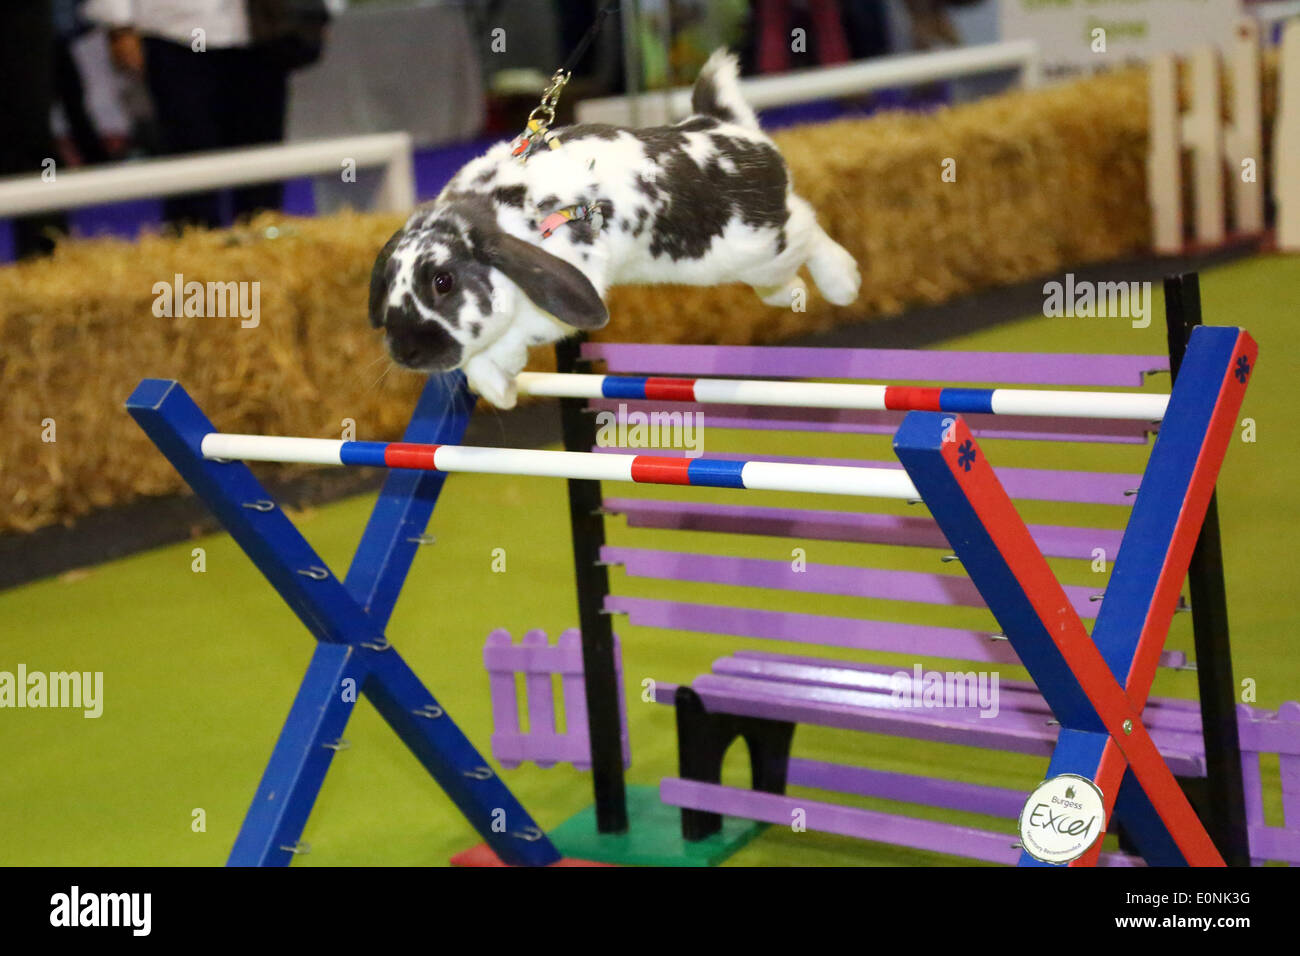 Londra, Regno Unito. Il 17 maggio 2014. Coniglio show jumping presso il coniglio Grand National con conigli dalla Svezia al London Pet Show, Earls Court di Londra. Credito: Paul Brown/Alamy Live News Immagini Stock